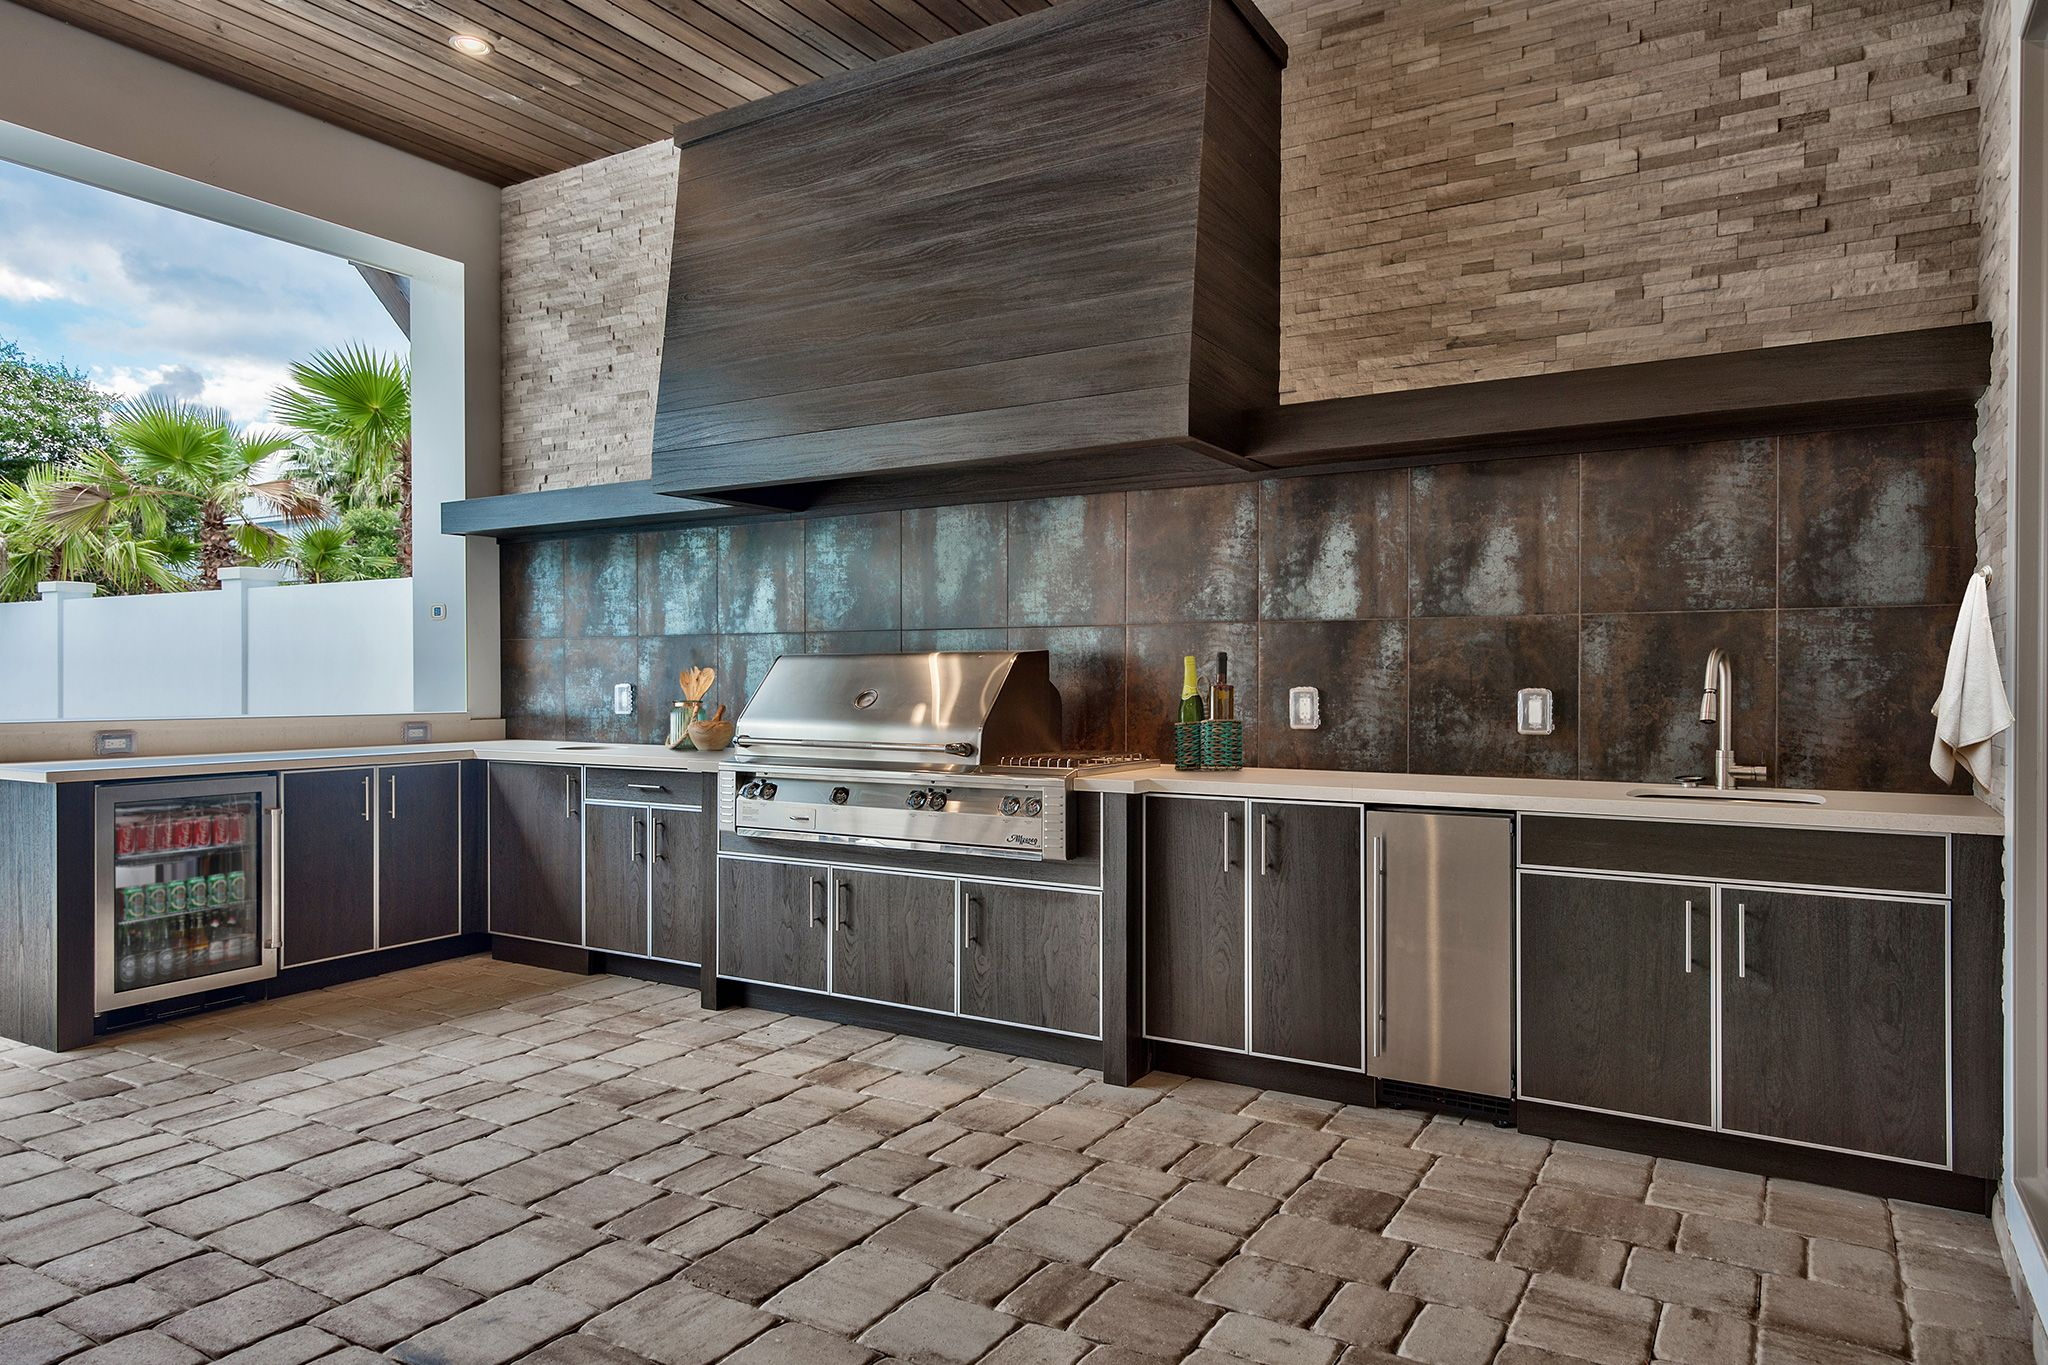 Discover The Rich Look Of Real Wood Outdoor Cabinets Without The Constant Maintenance Nat Outdoor Kitchen Cabinets Outdoor Kitchen Outdoor Kitchen Countertops